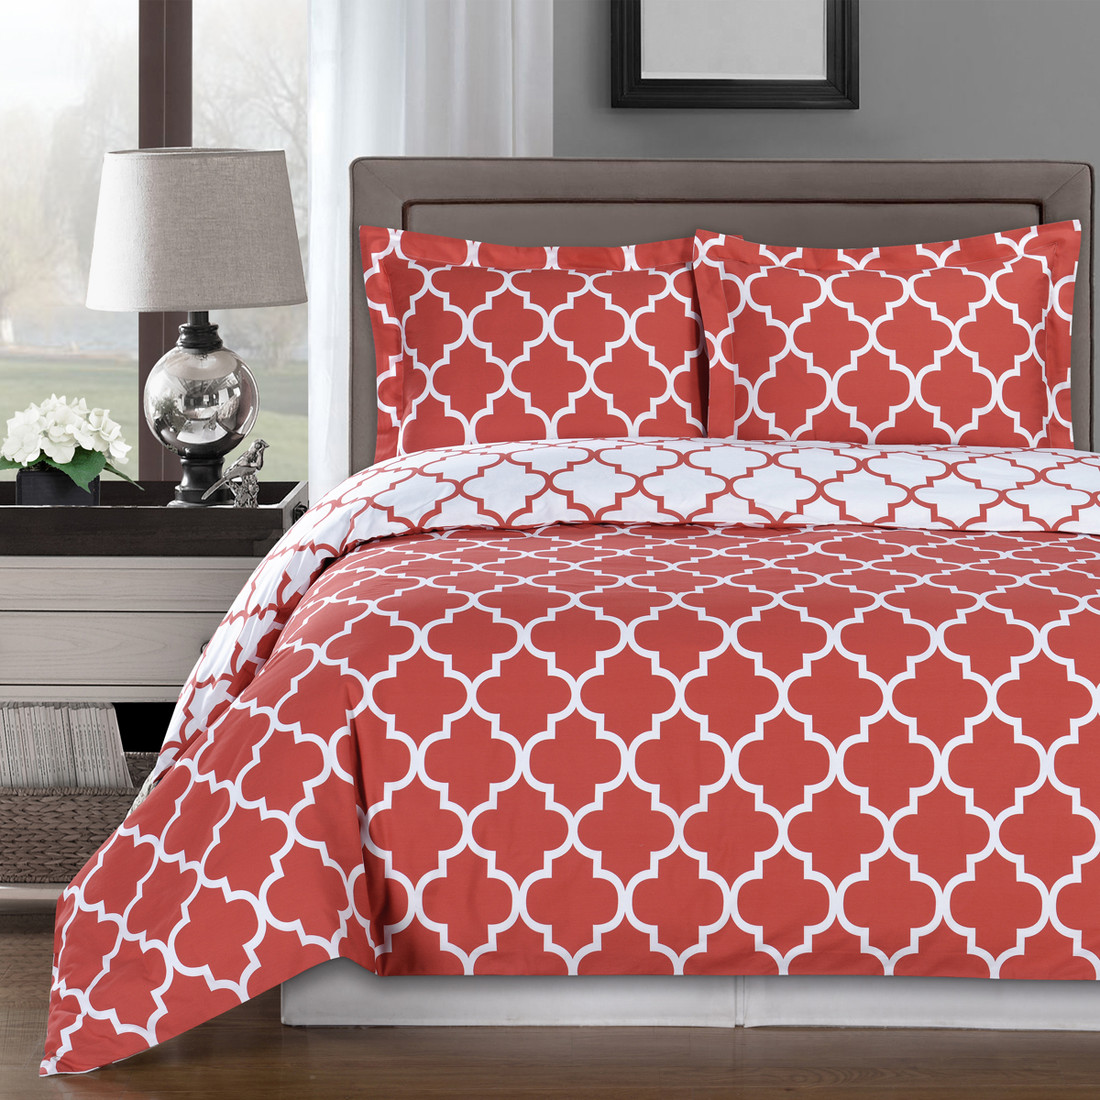 meridian 100 cotton duvet cover sets image coral